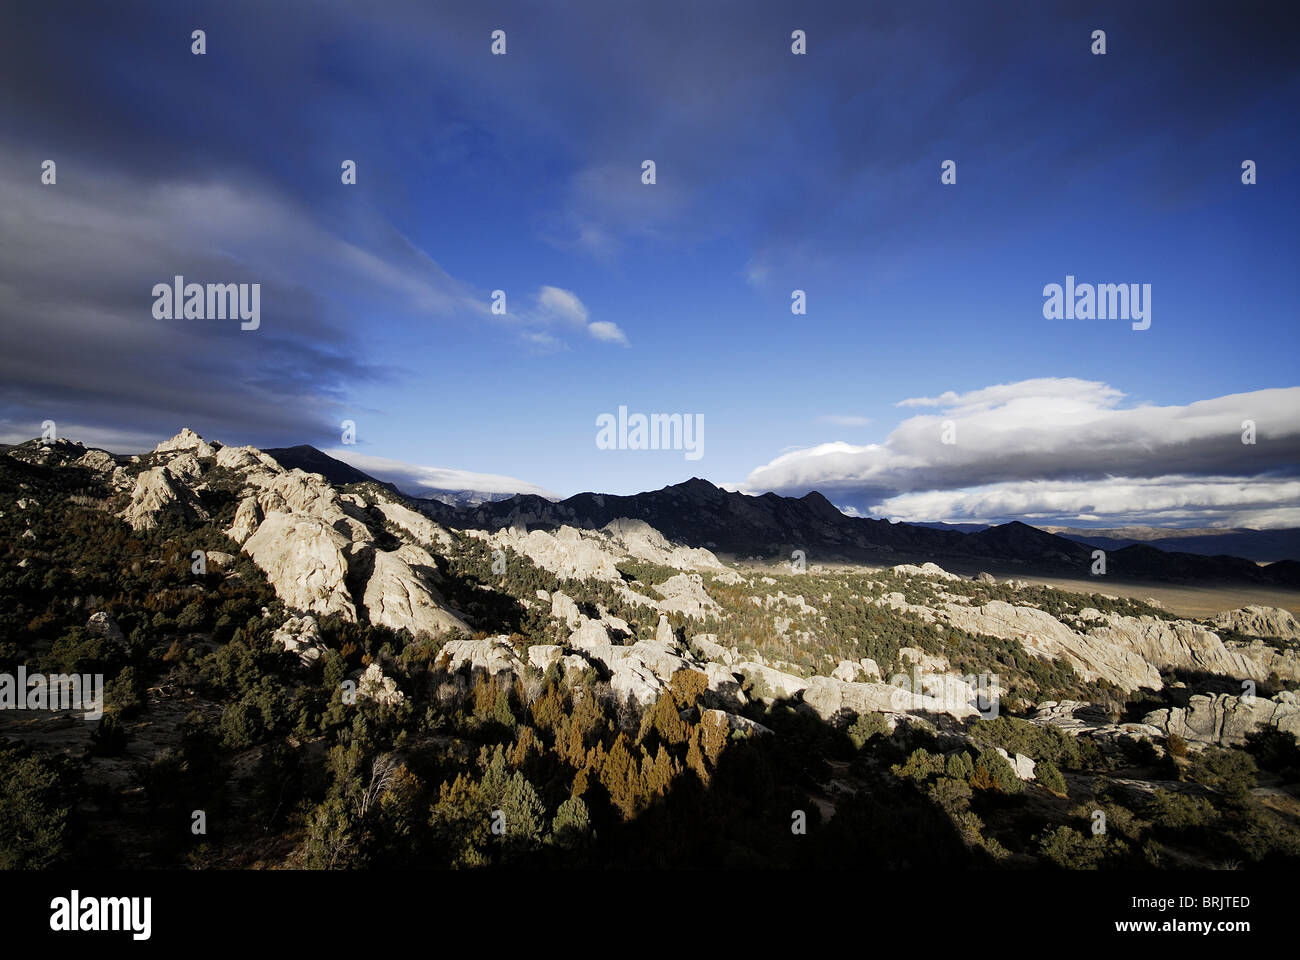 View of a vally in the City of Rocks, Idaho. - Stock Image